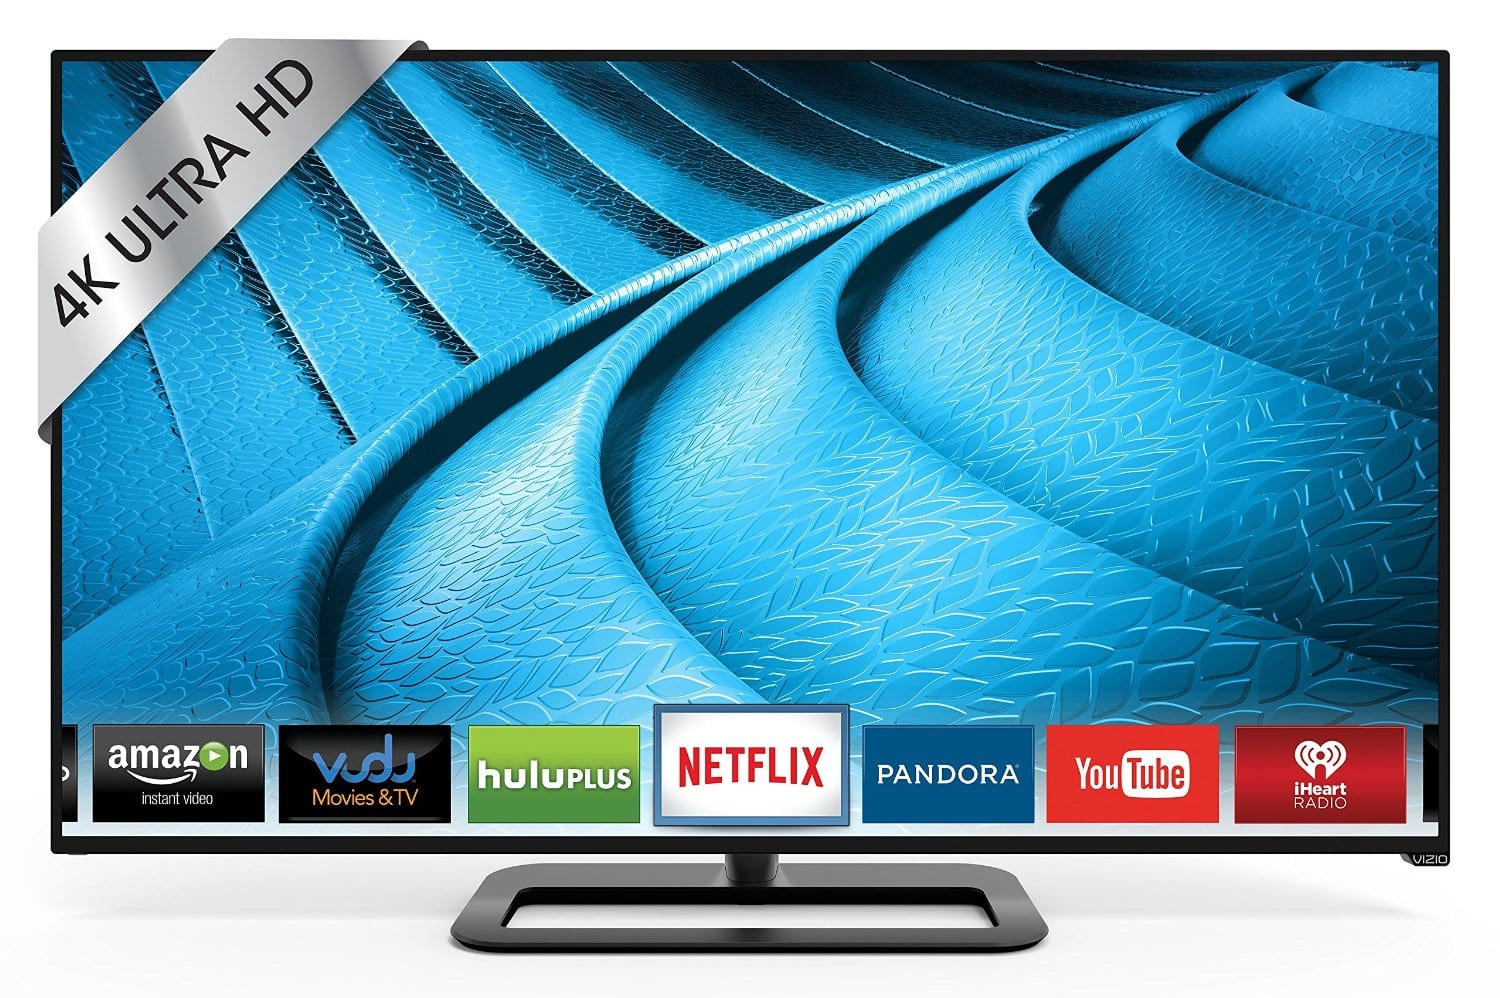 "VIZIO 60"" Class Ultra HD Full-Array LED Smart TV, P602ui-B3 $900 at Walmart"